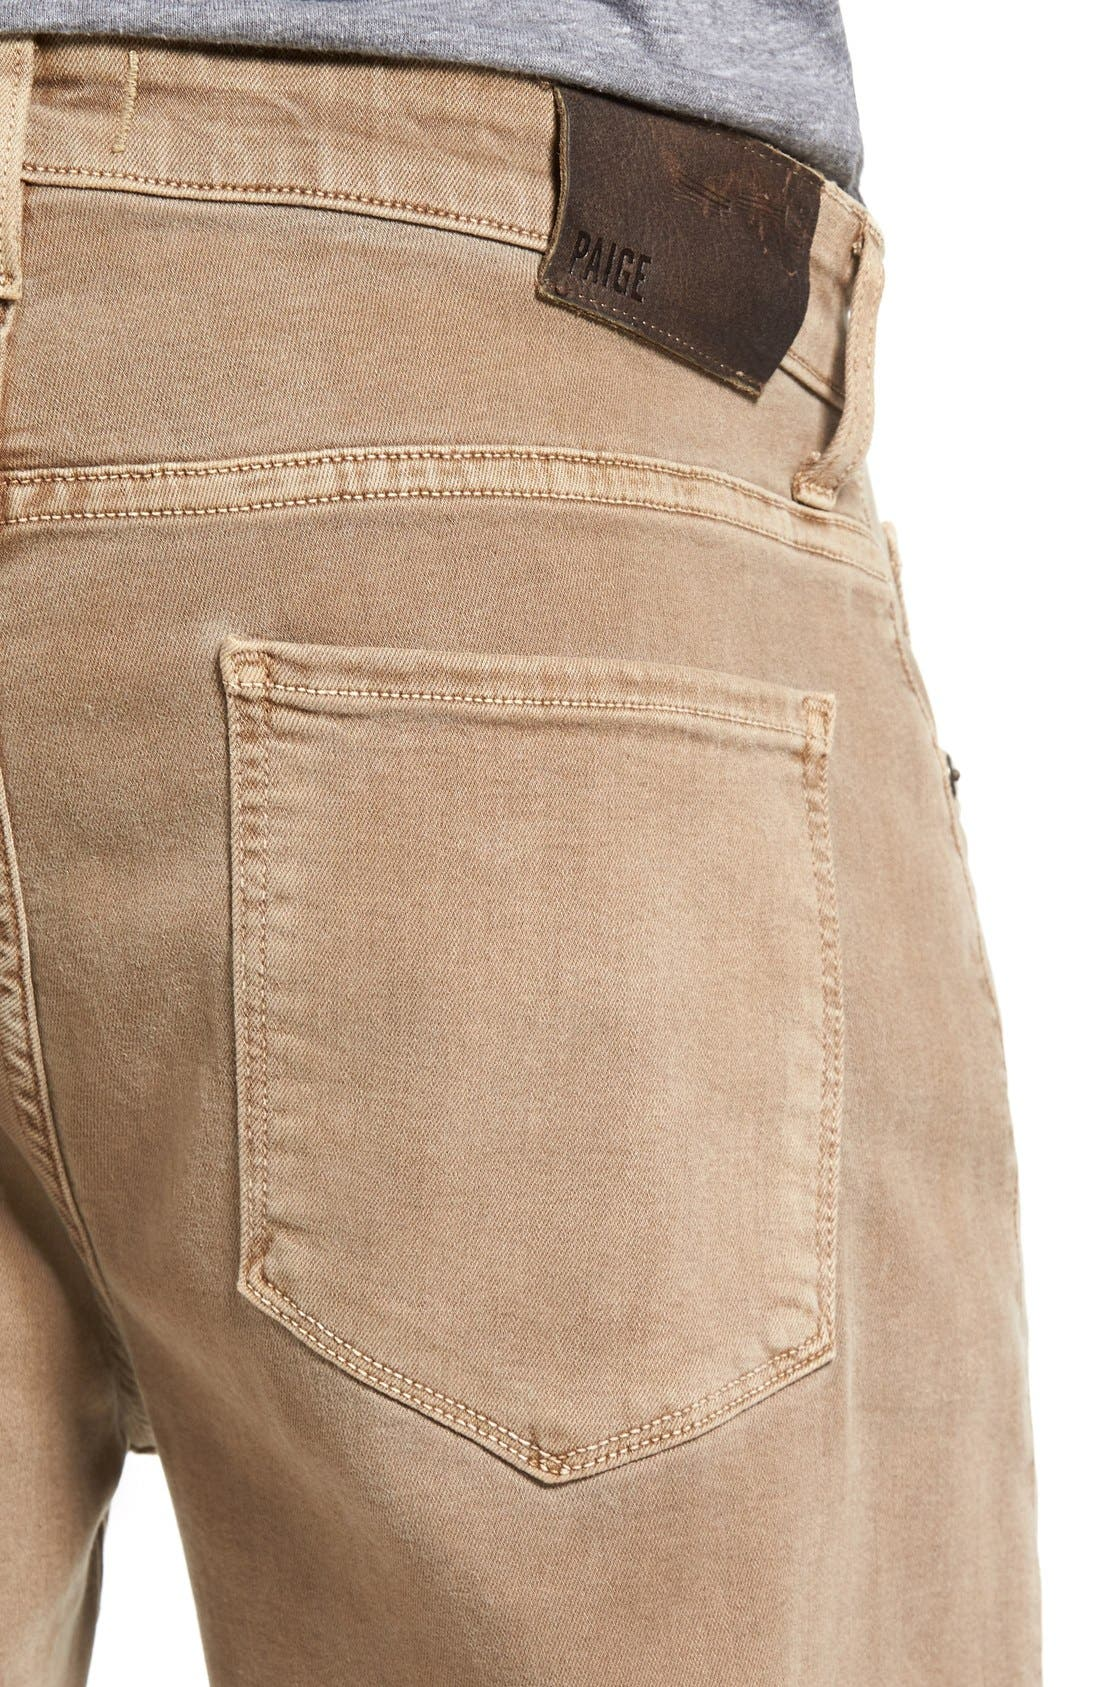 Transcend - Federal Slim Straight Leg Jeans,                             Alternate thumbnail 4, color,                             250